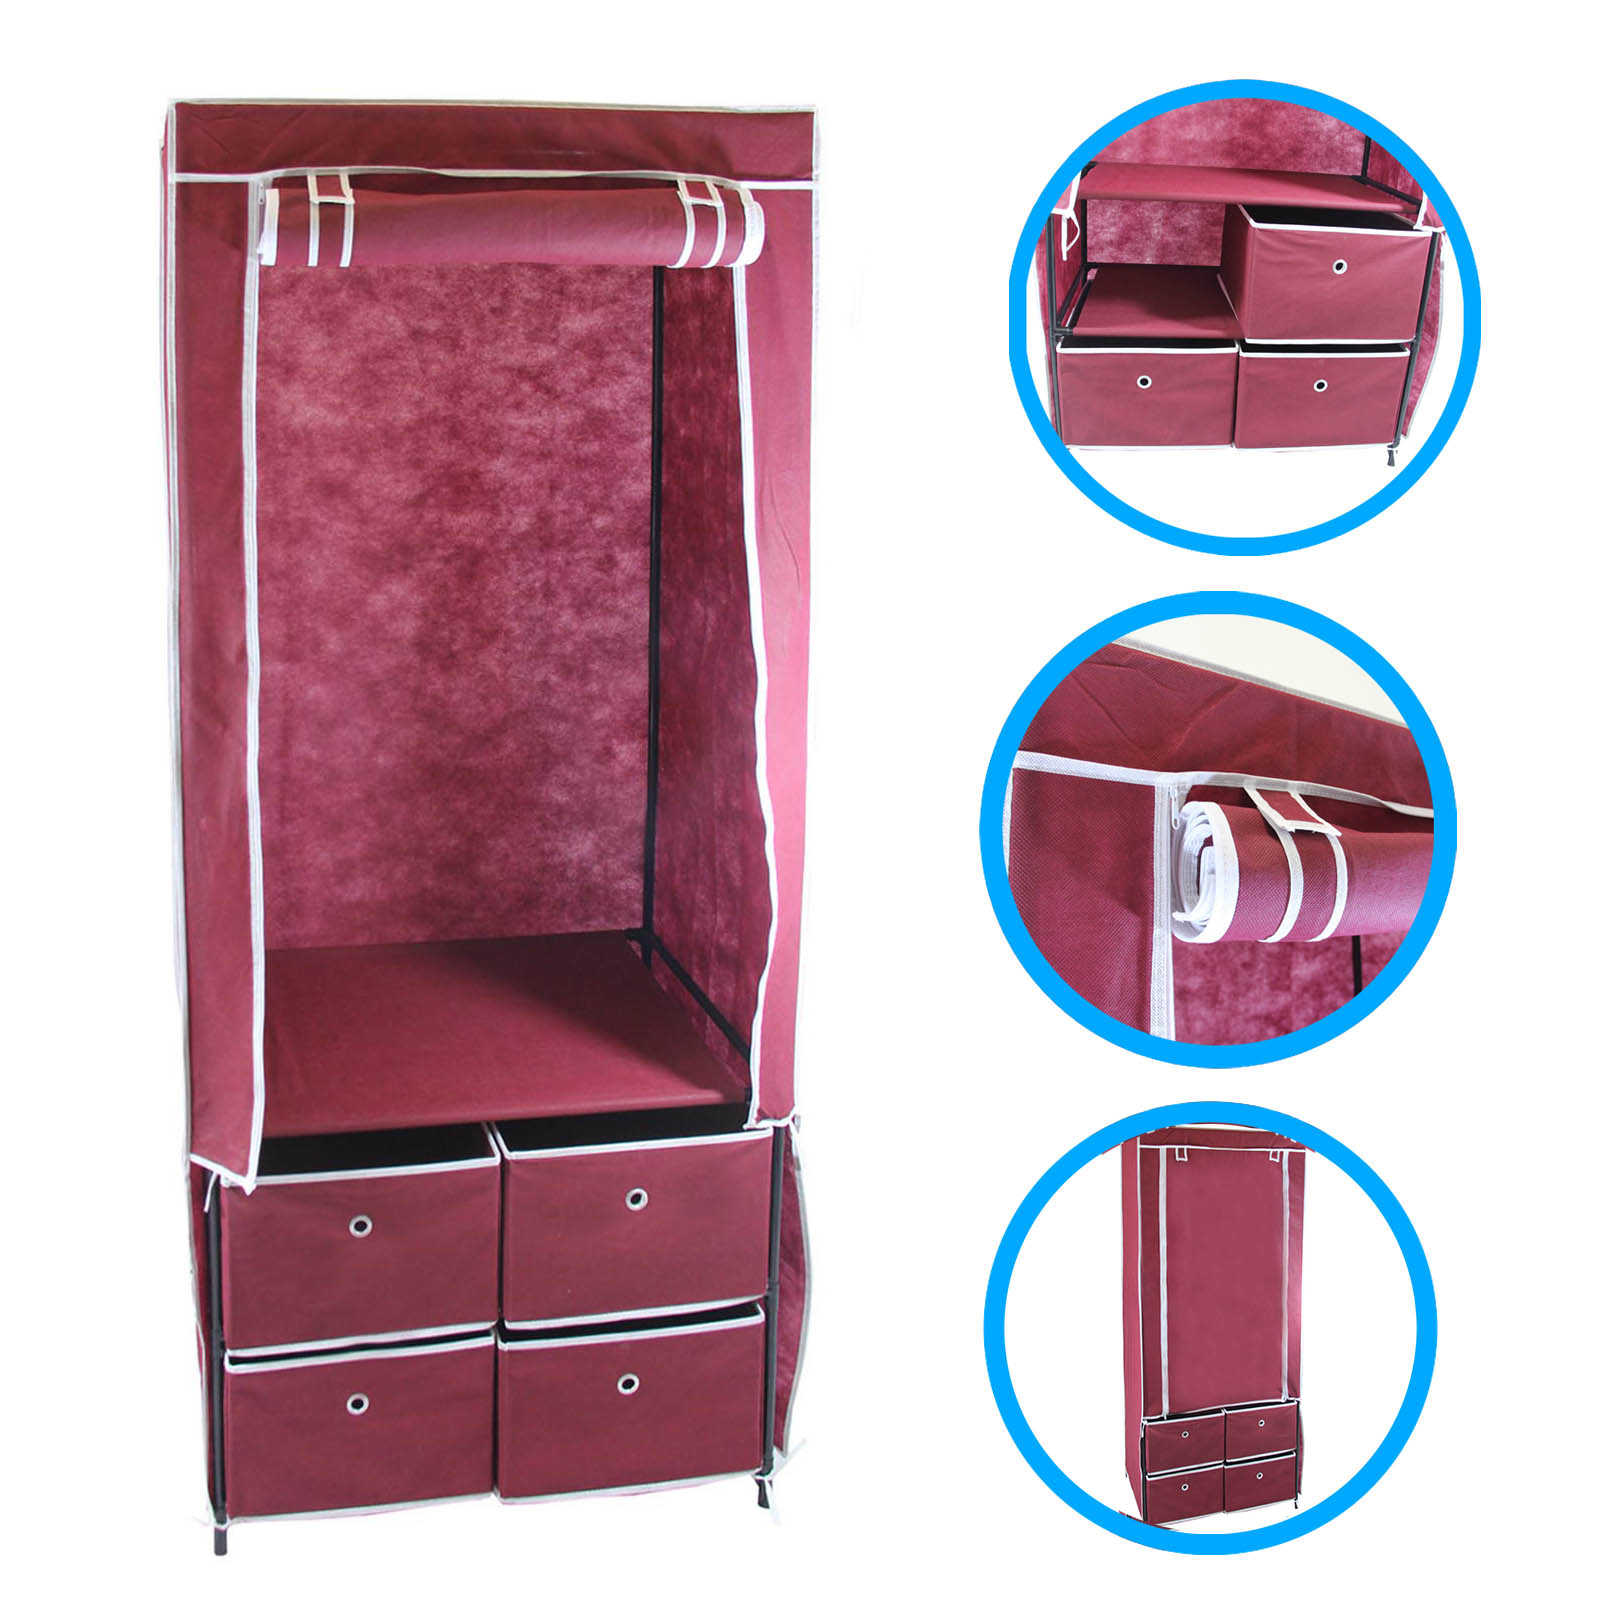 "Clevr 70"" Portable Clothes Space Organizer Wardrobe Dresser Closet w/ Drawers Shelves"